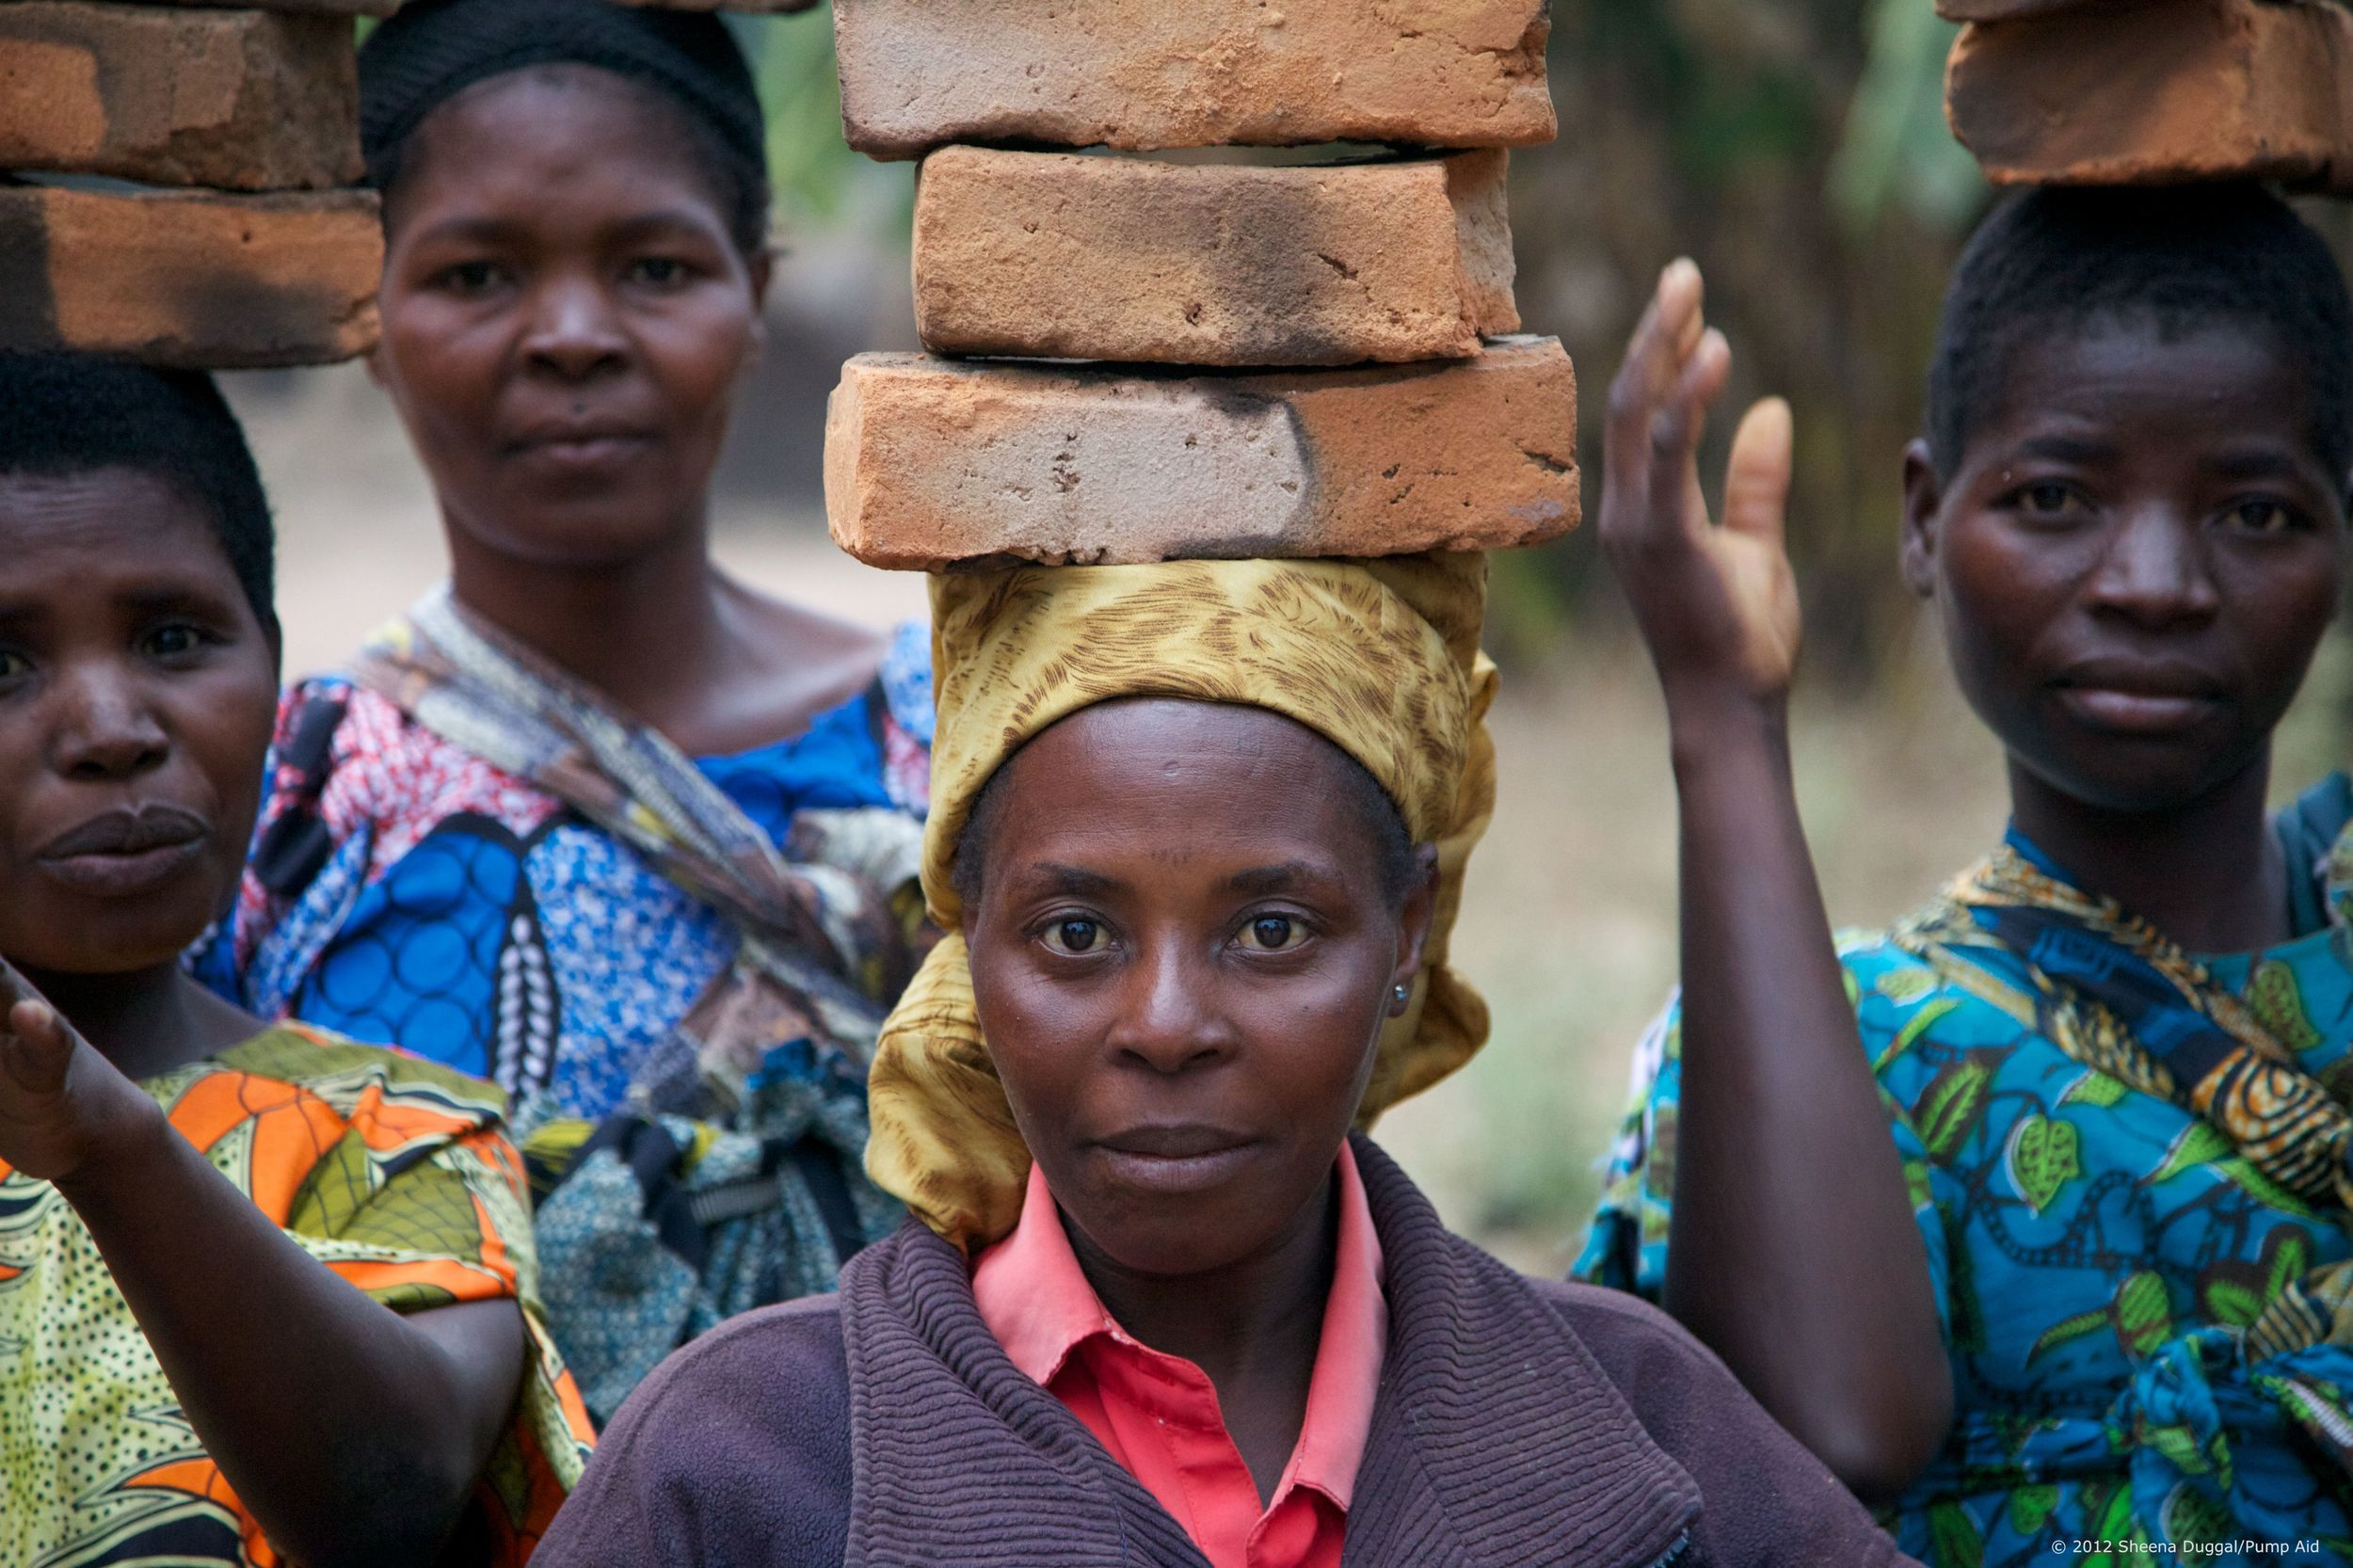 Brick Ladies Malawi 2012  Women carrying bricks for lining a muddy water well.